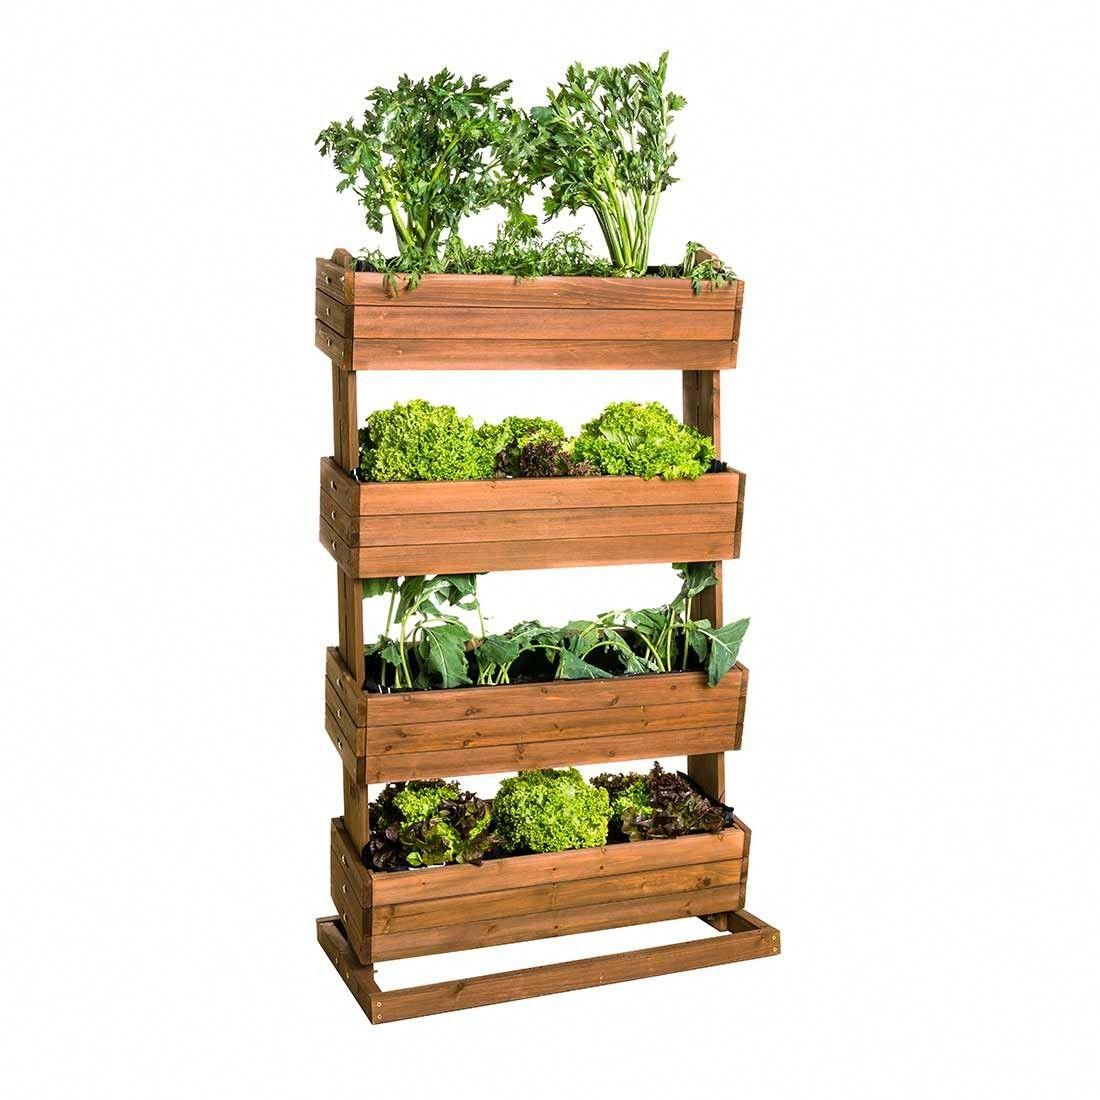 Hecht Cube 4 Hochbeet Vertikal Tanne Urbangardeningbalcony Growing Vegetables Planting Herbs Annual Plants